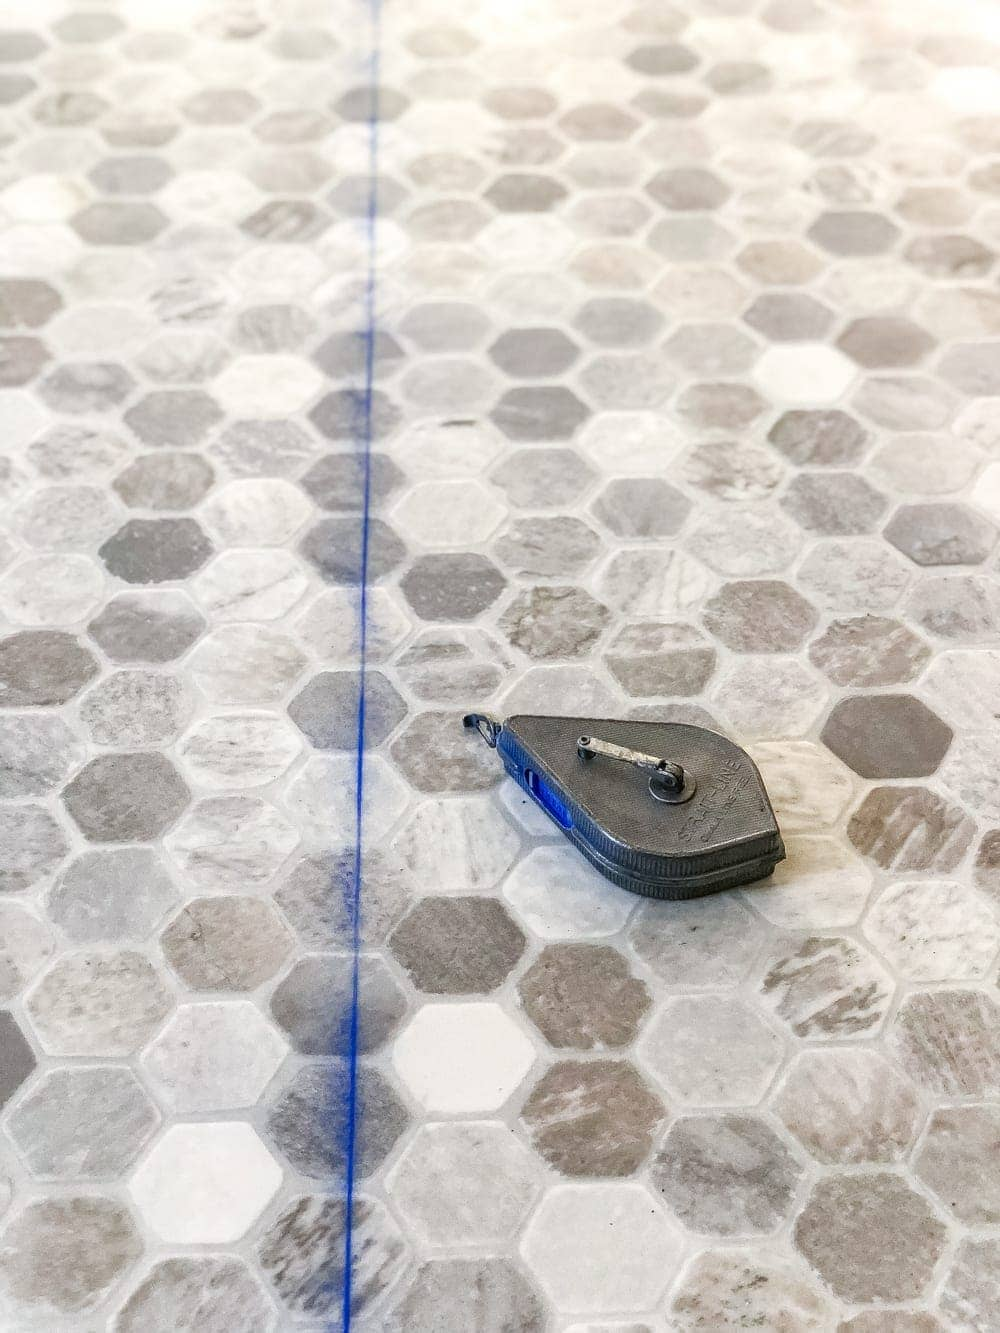 How to install sheet vinyl flooring over old tile | Use a chalk line to cut straight lines between measurements